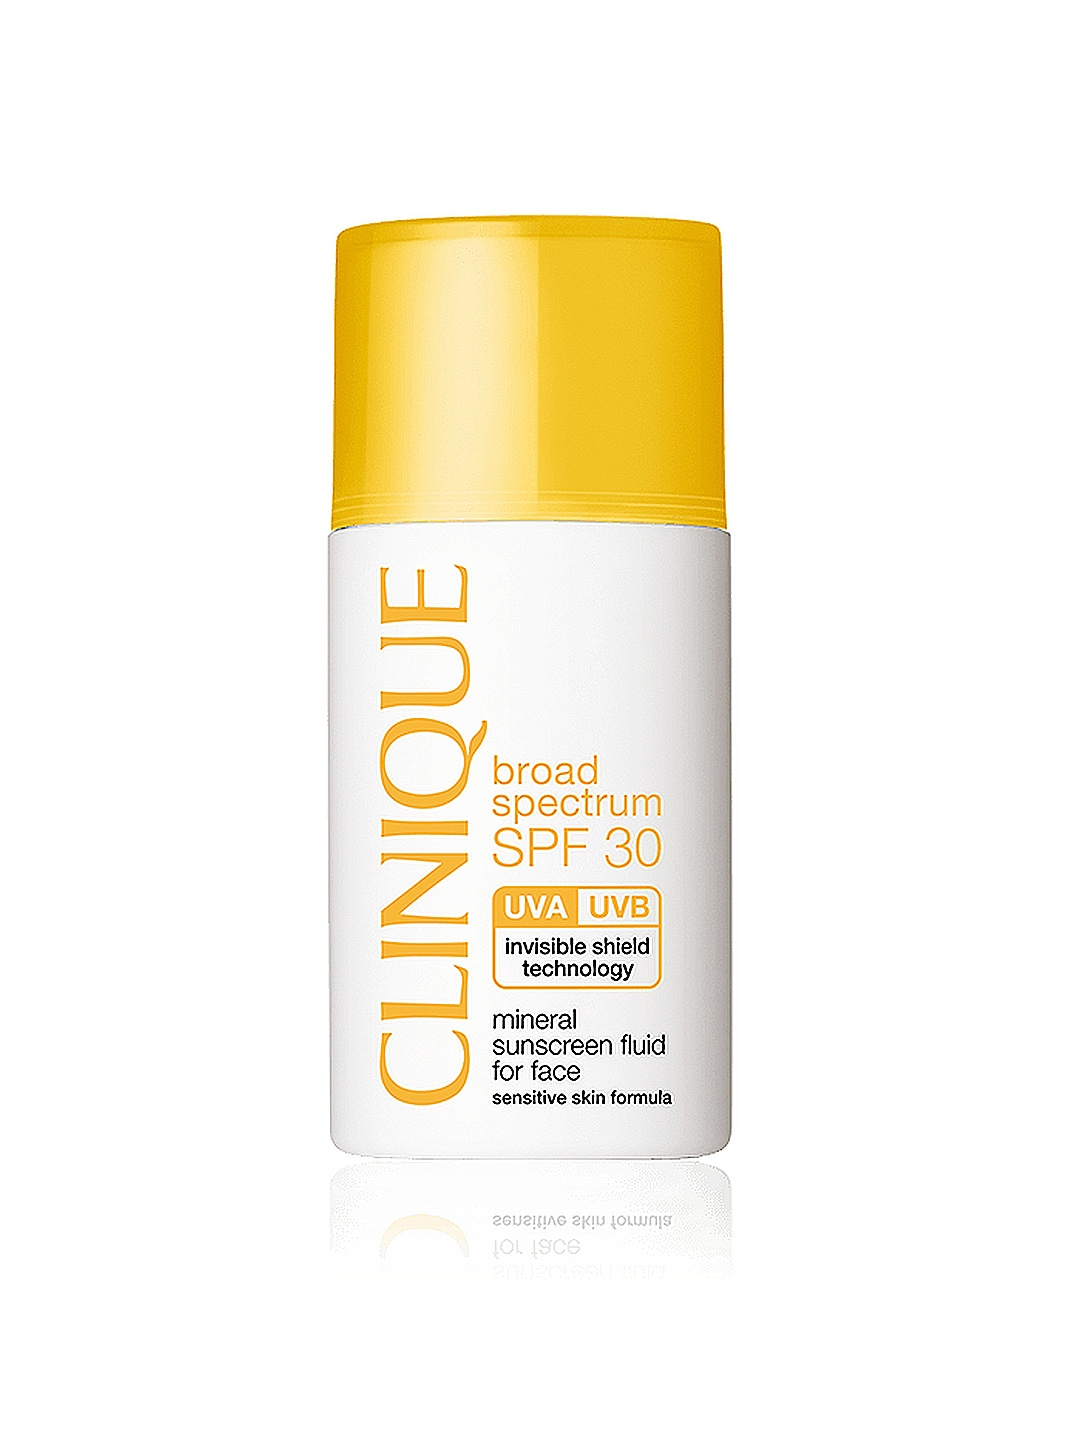 Clinique SPF 30 Mineral Sunscreen Fluid for Face image